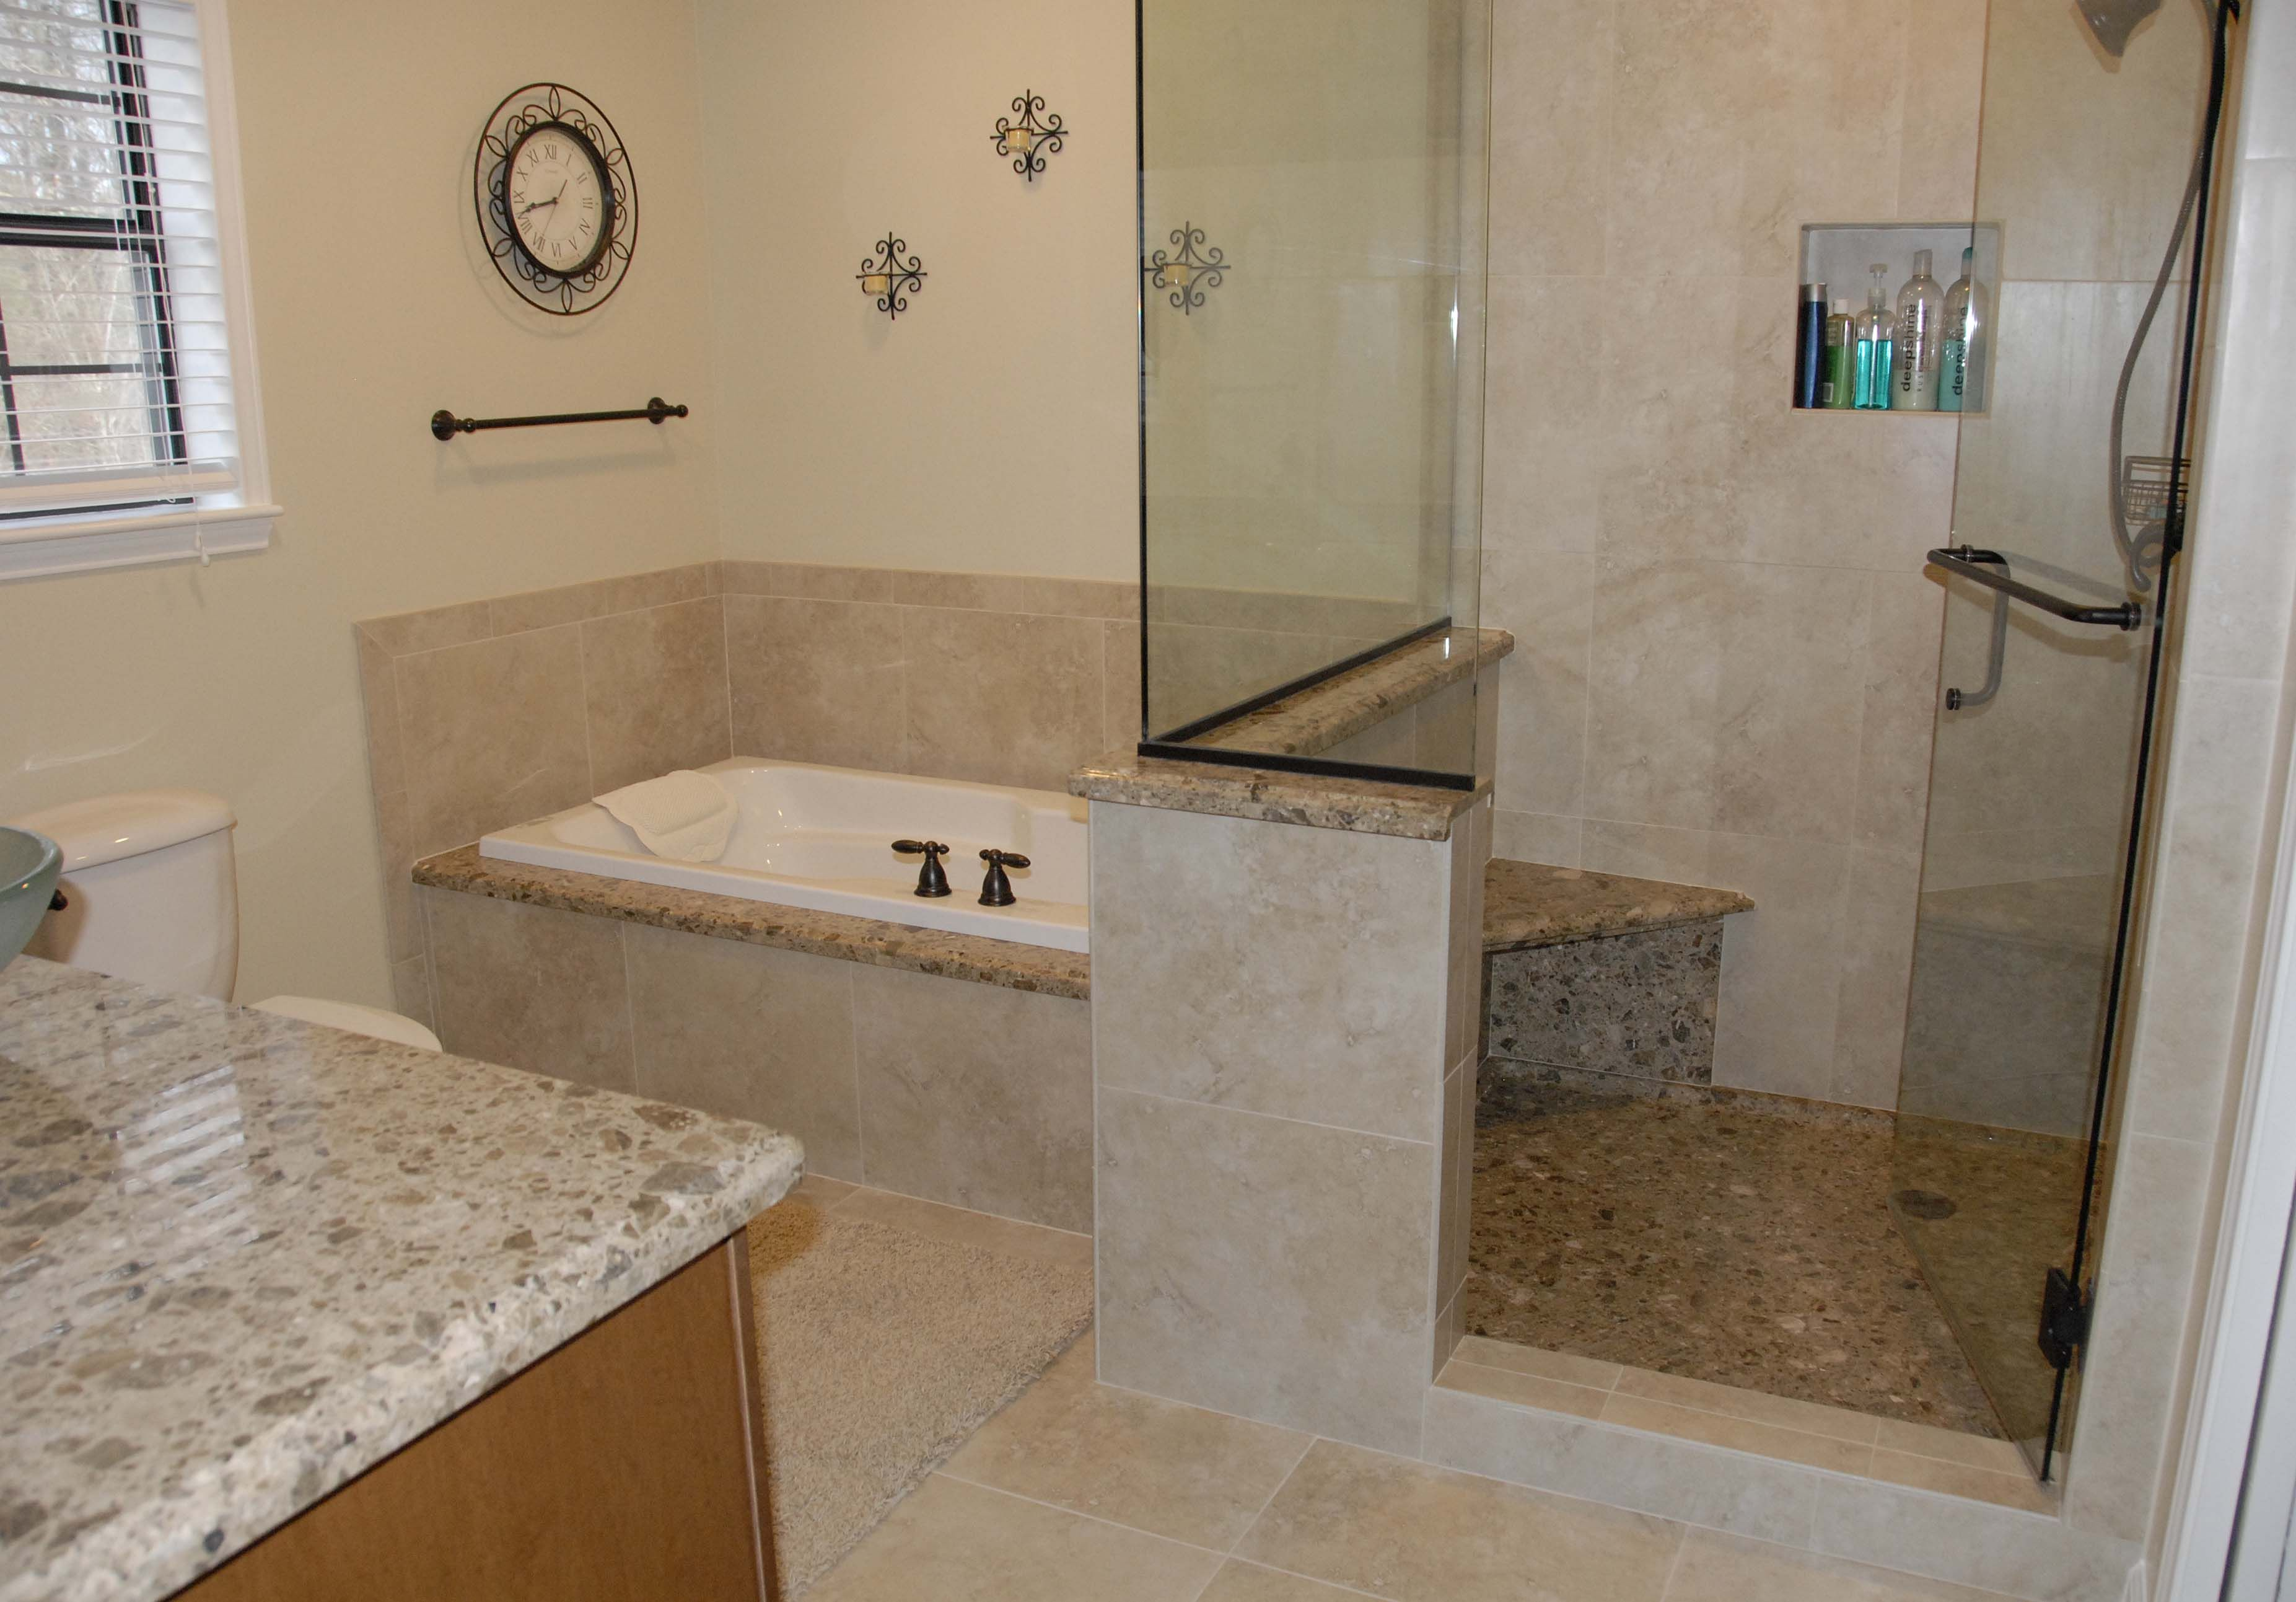 Best of small bathroom remodel ideas for your home bathroom ideas